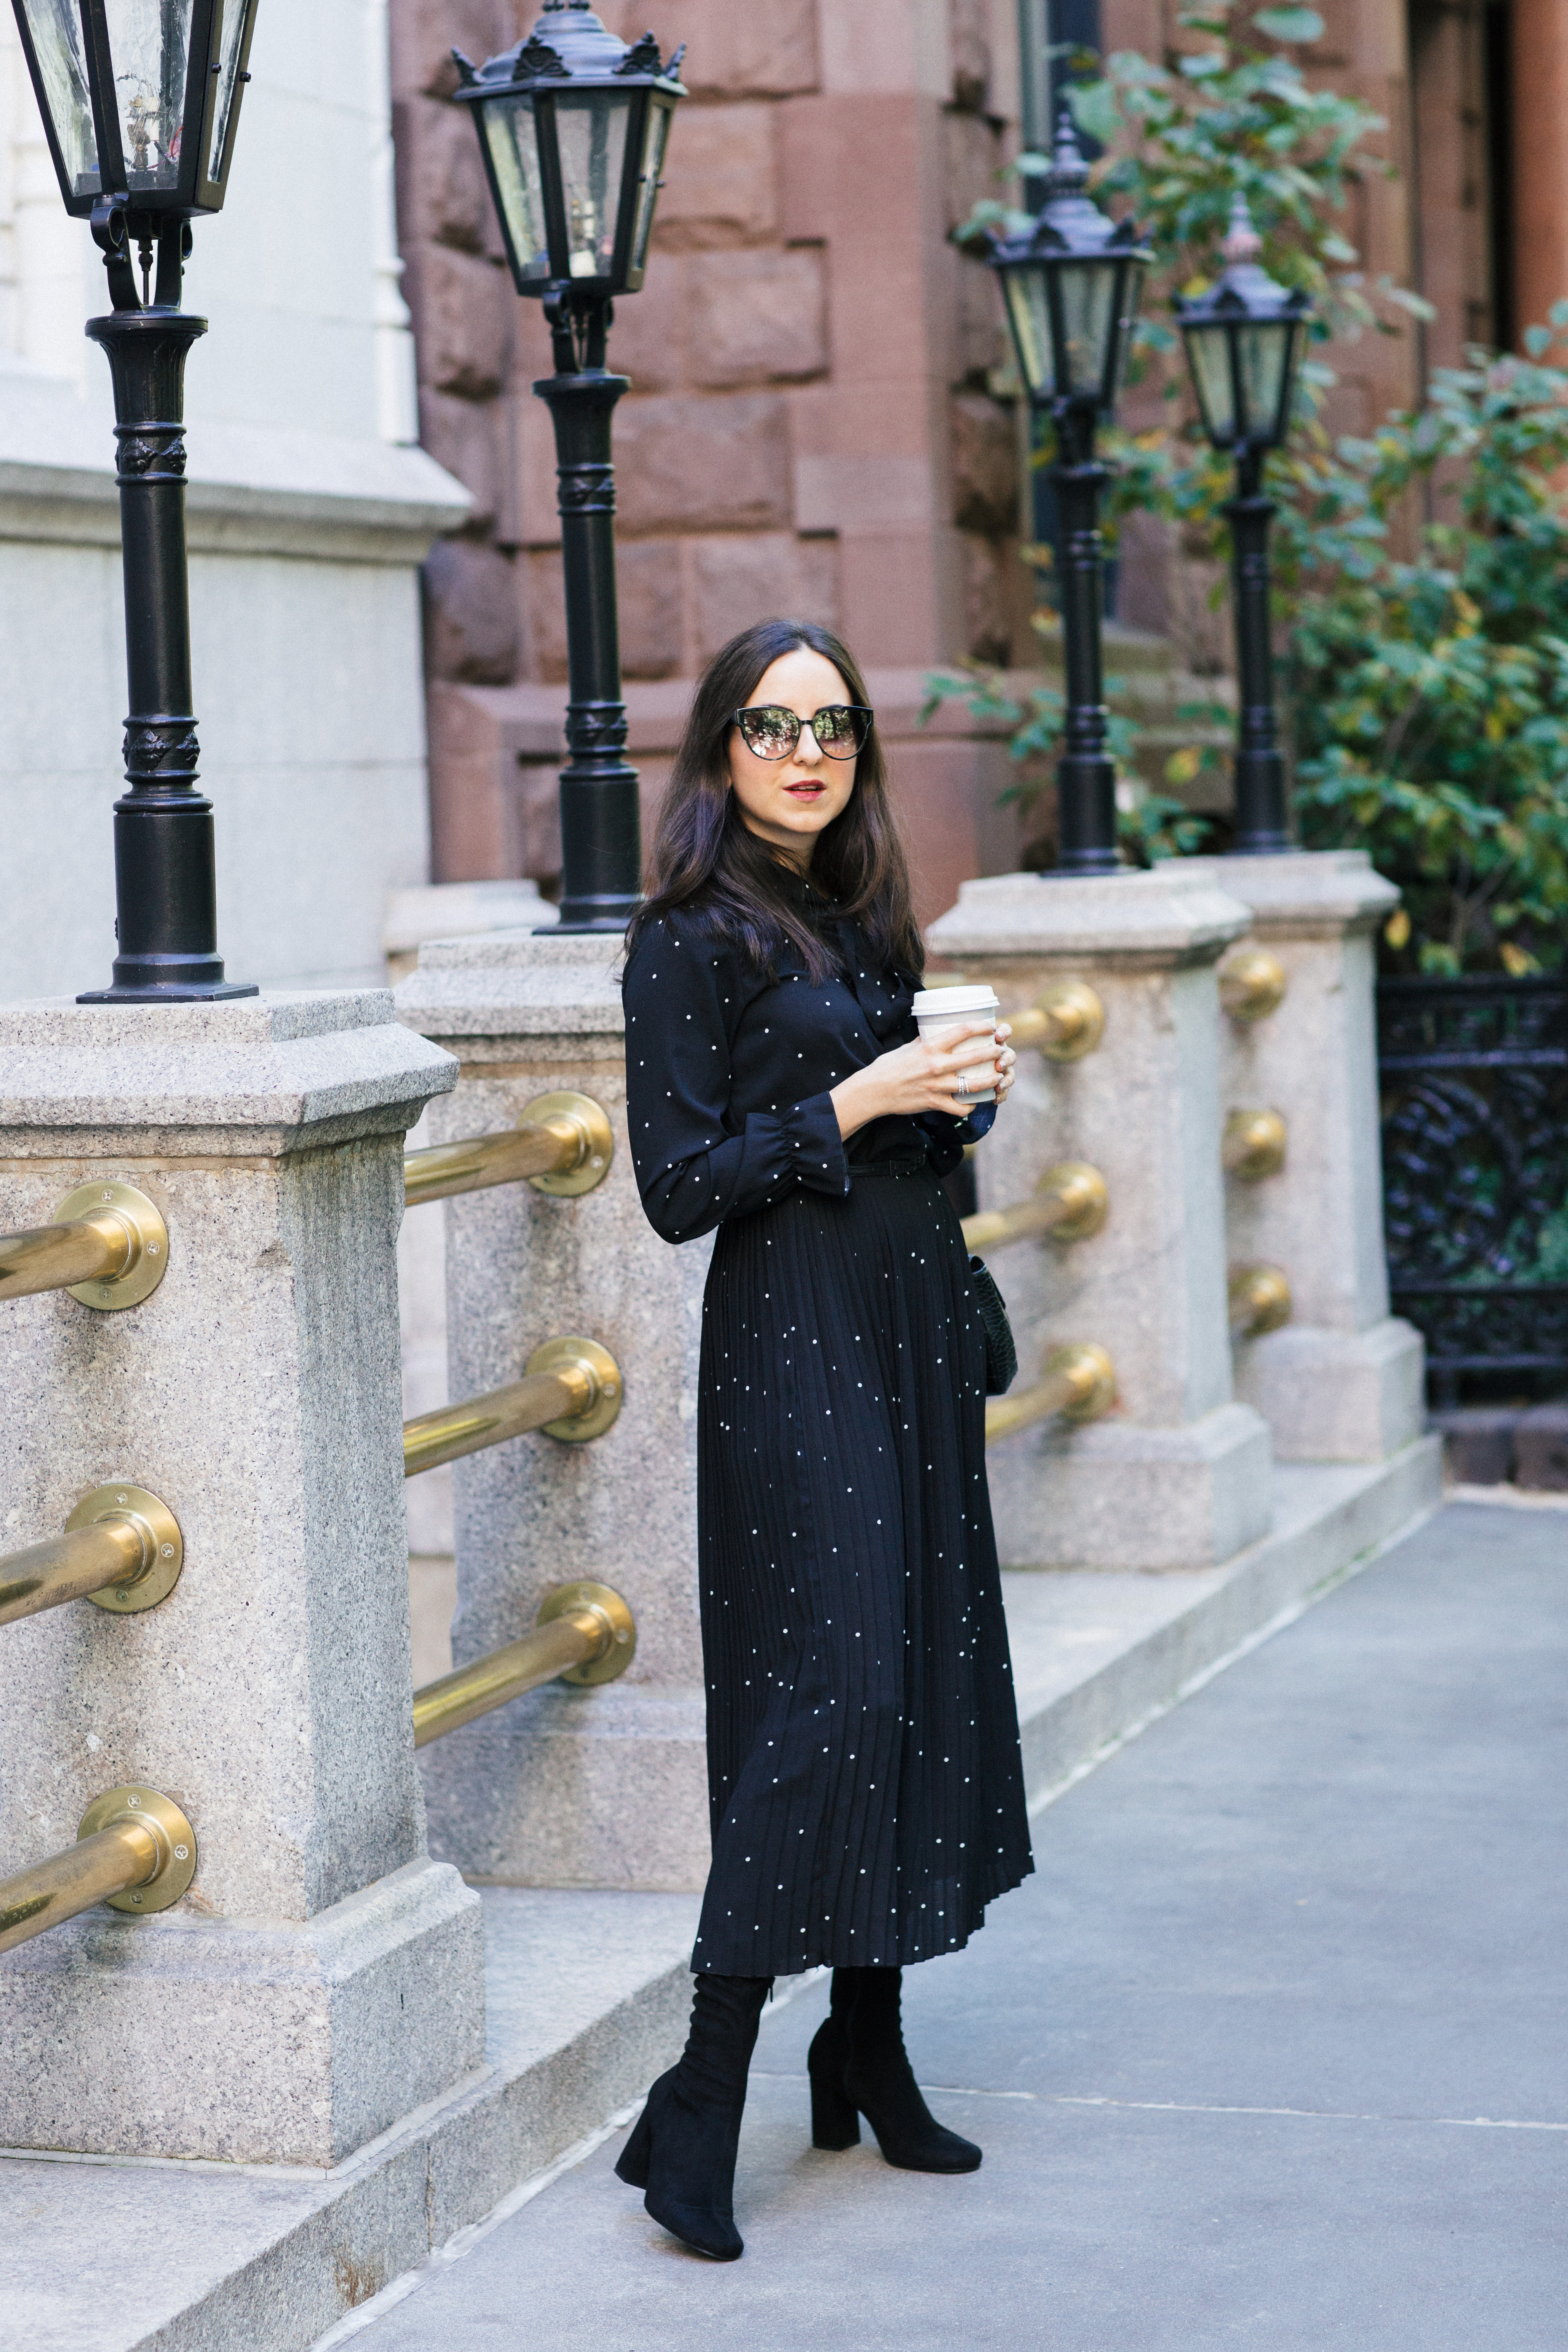 Yana Frigelis of NoMad Luxuries wearing a black polka dot dress from Romwe for the fall in Gramercy Park New York